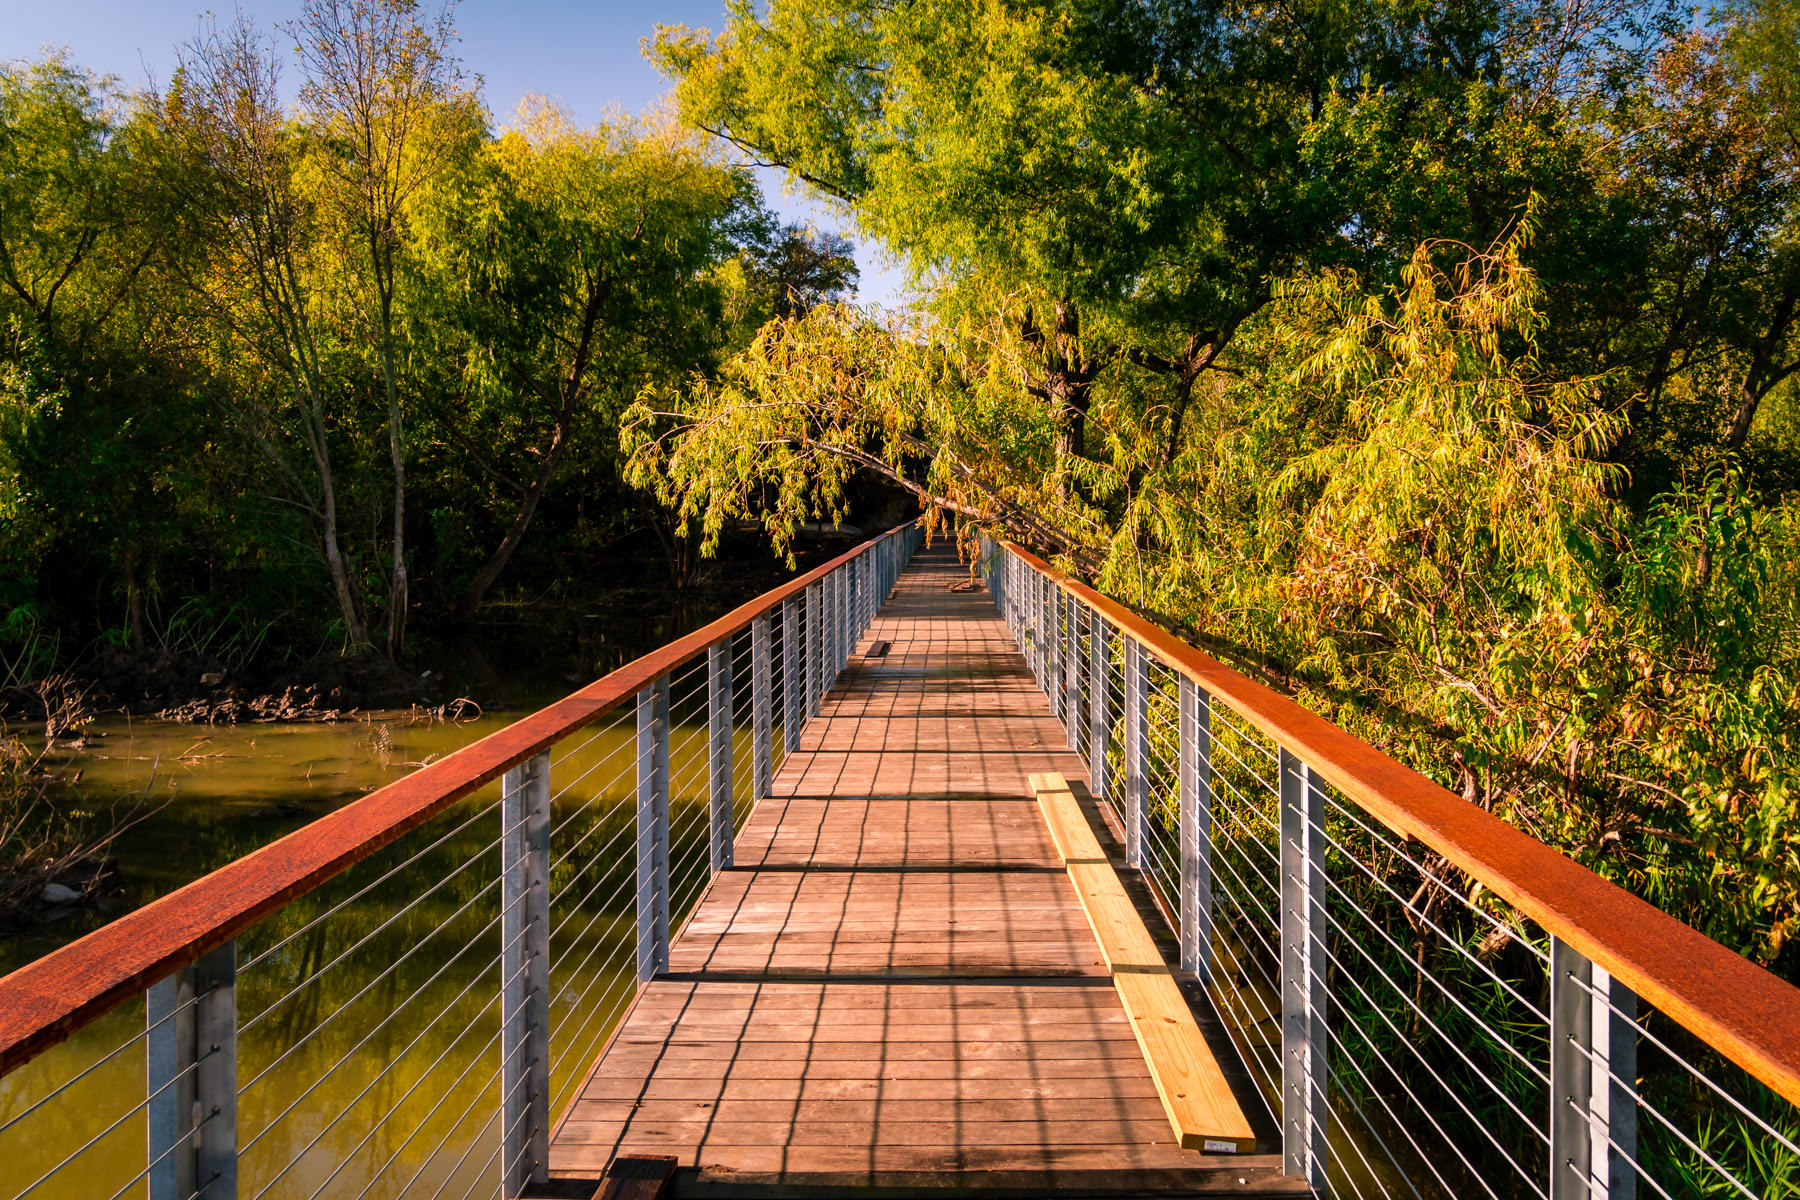 A wooden walkway leads into the forest at the Fort Worth Nature Center & Refuge, Texas.